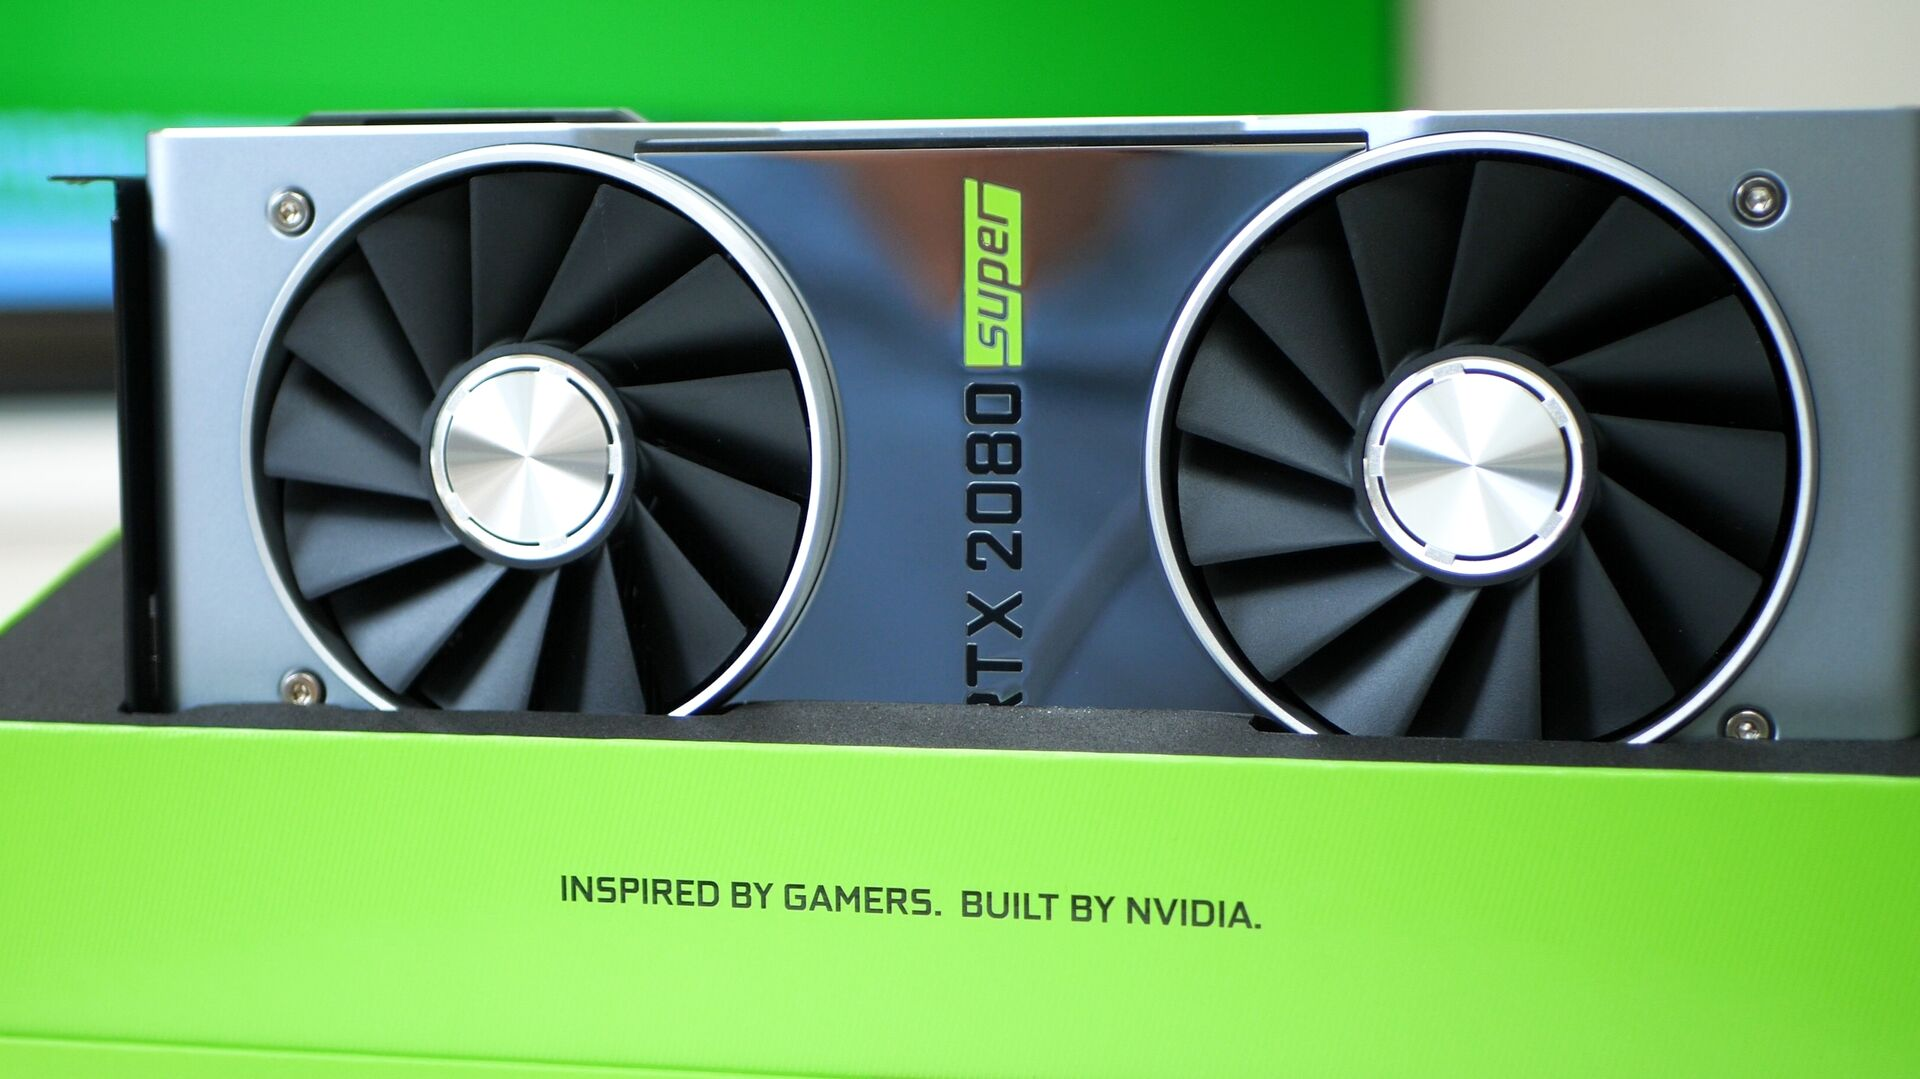 Nvidia GeForce RTX 2080 Super: rasterisation analysis